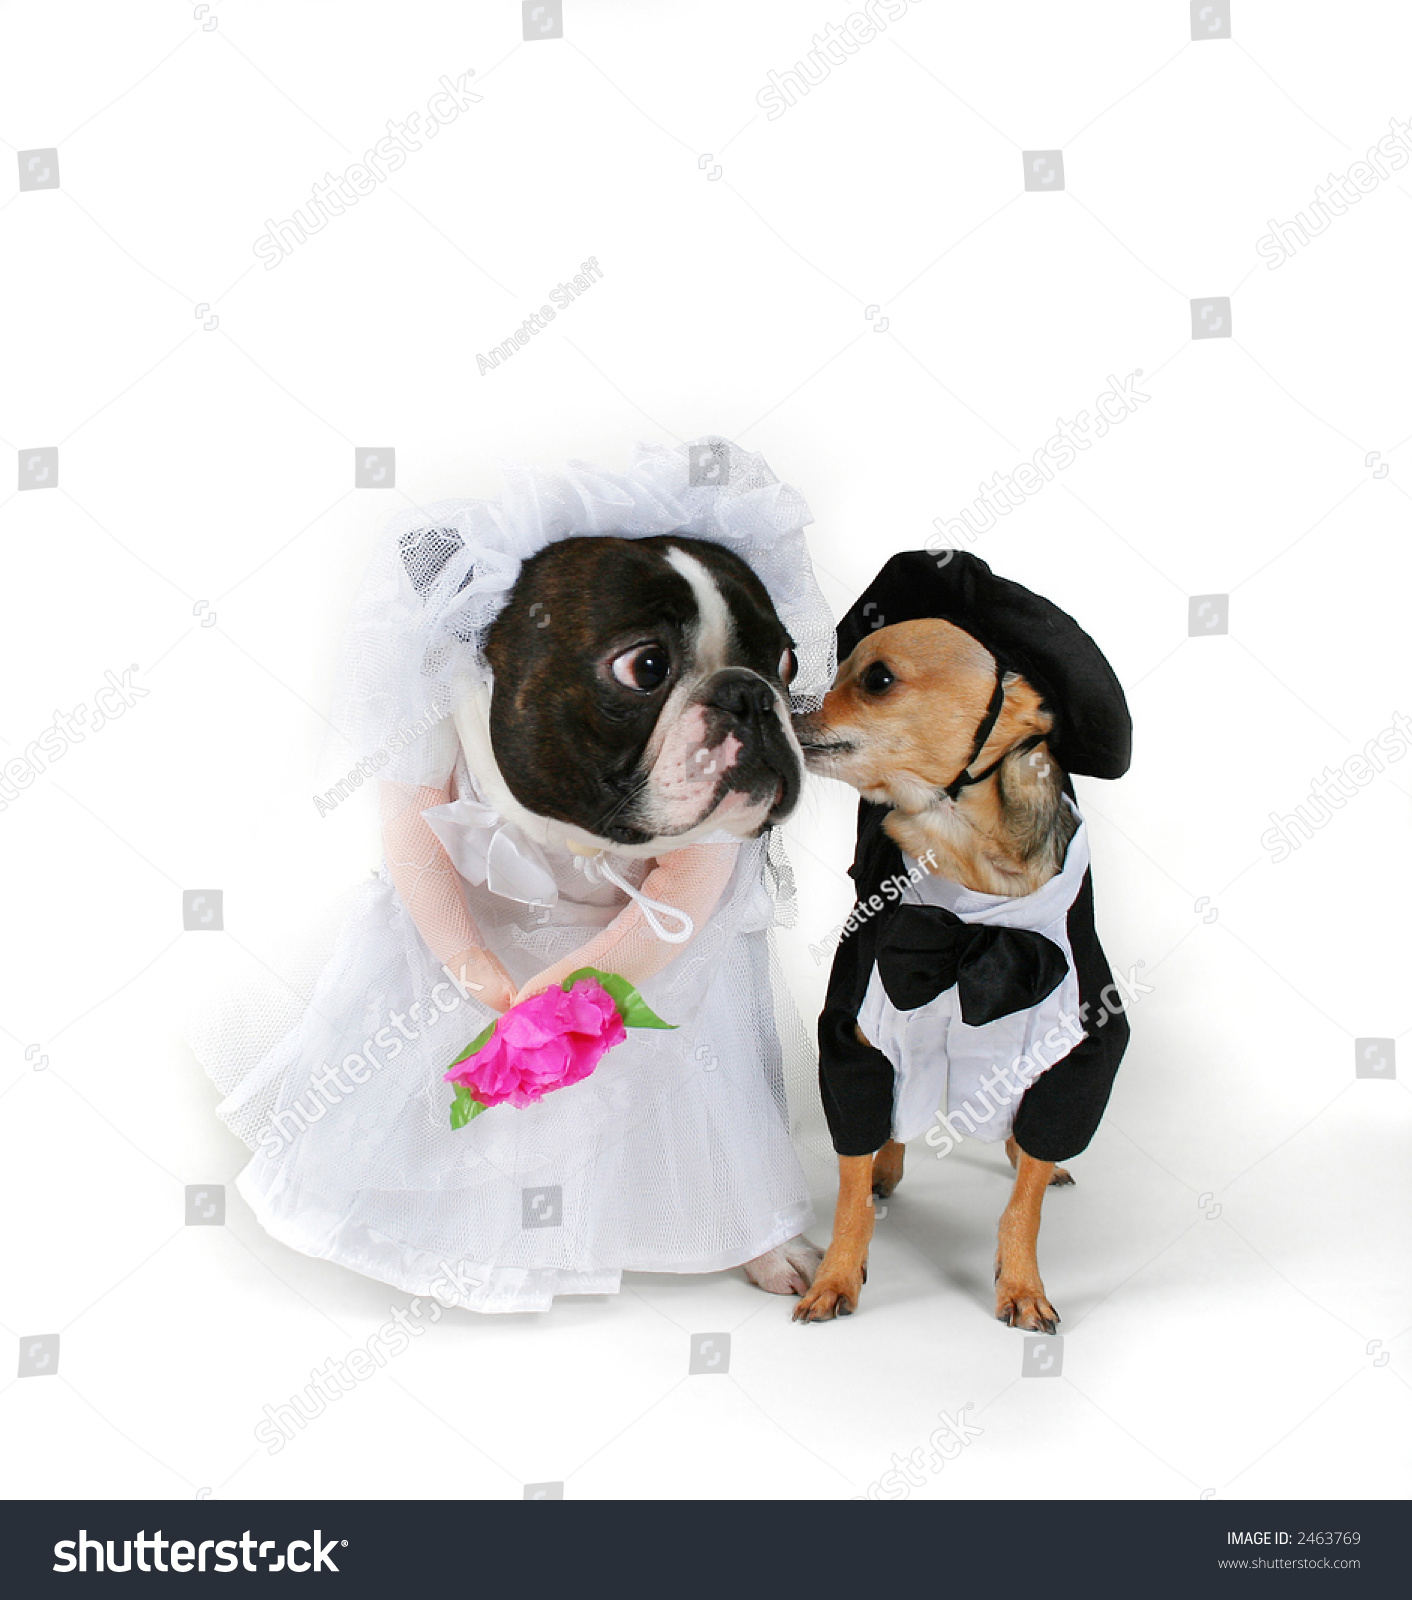 Boo Getting Married Dogs Puppy